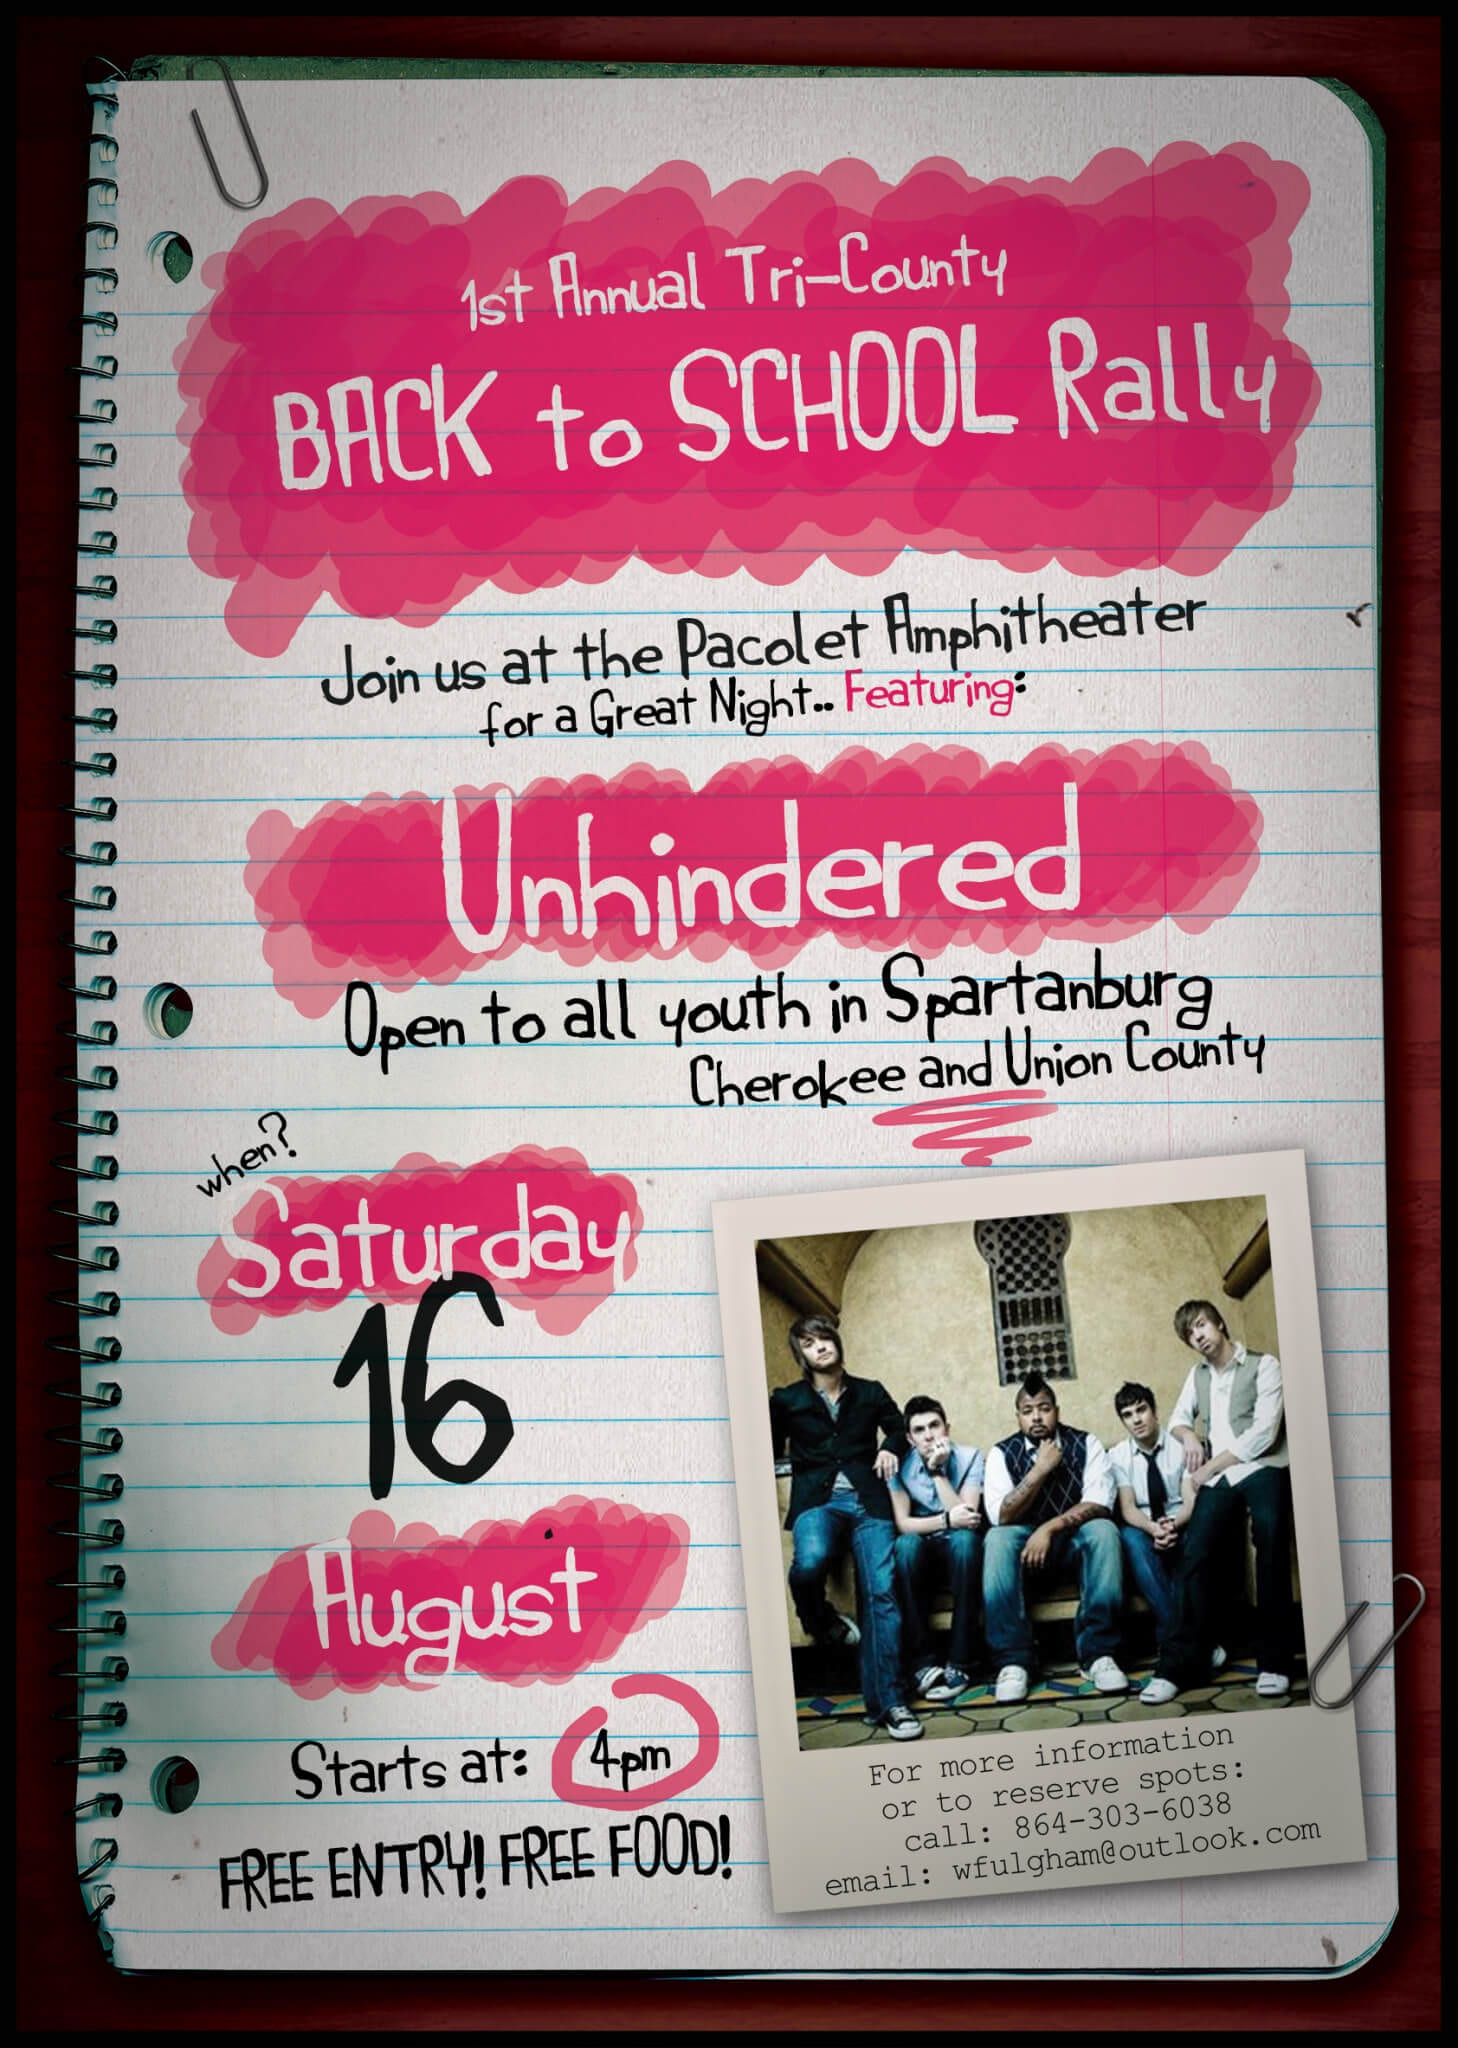 Back to School Rally Poster